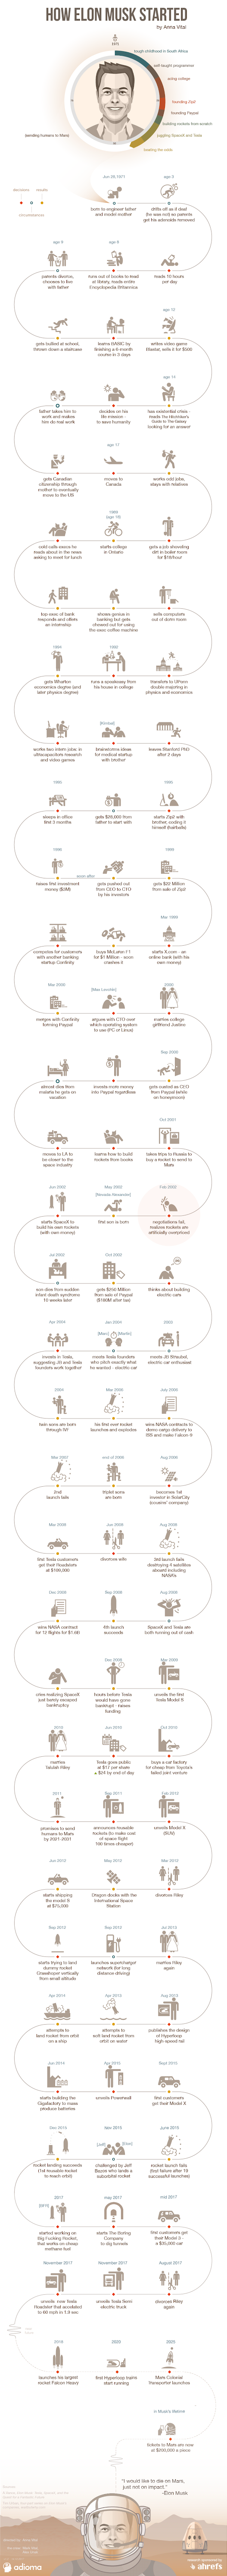 How Elon Musk Started #infographic #Elon Musk #infographics #Success #How To